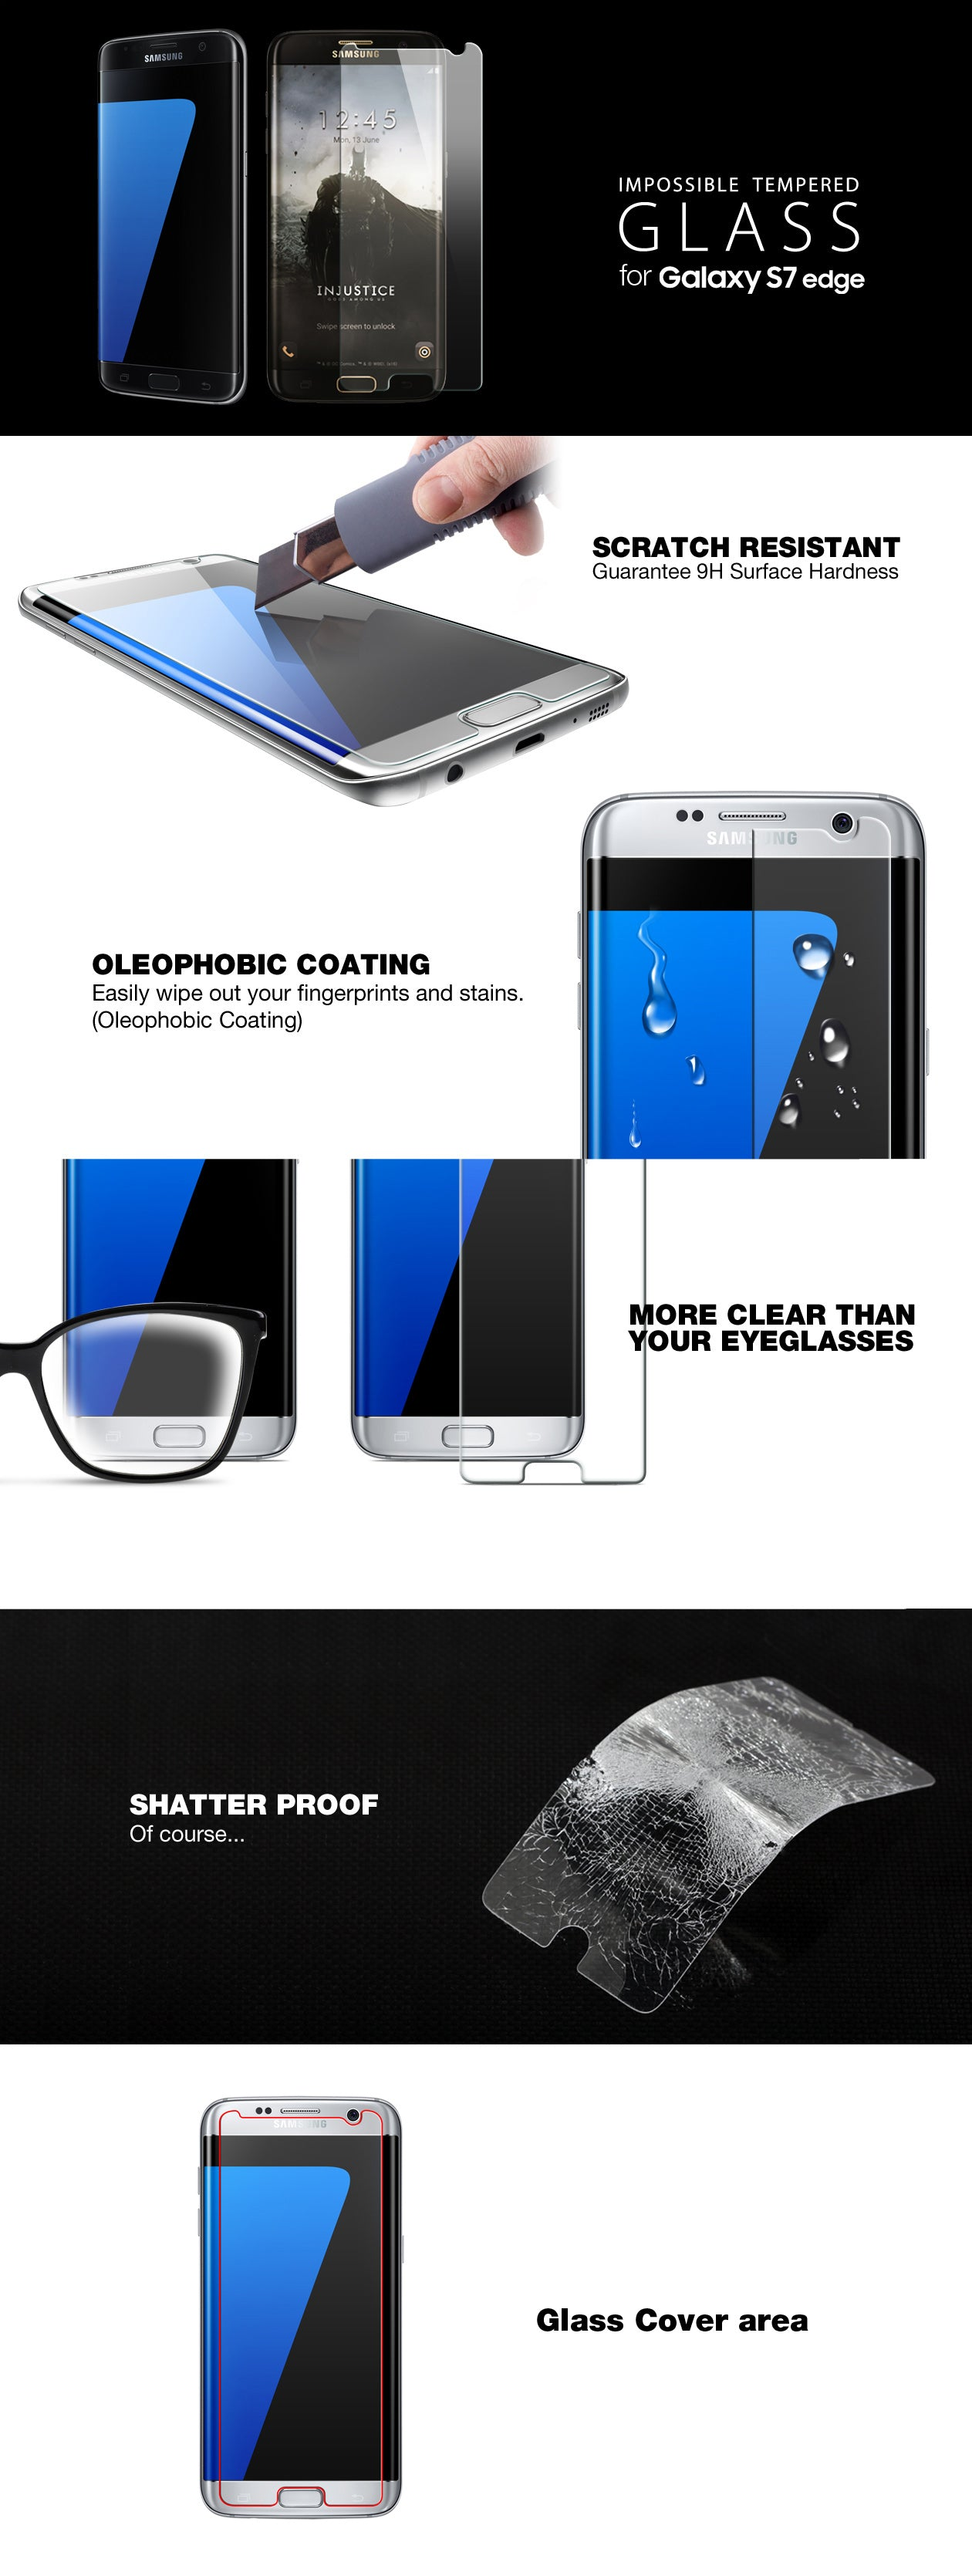 Patchworks ITG Plus Galaxy s7 edge screen protector tempered glass detail 01